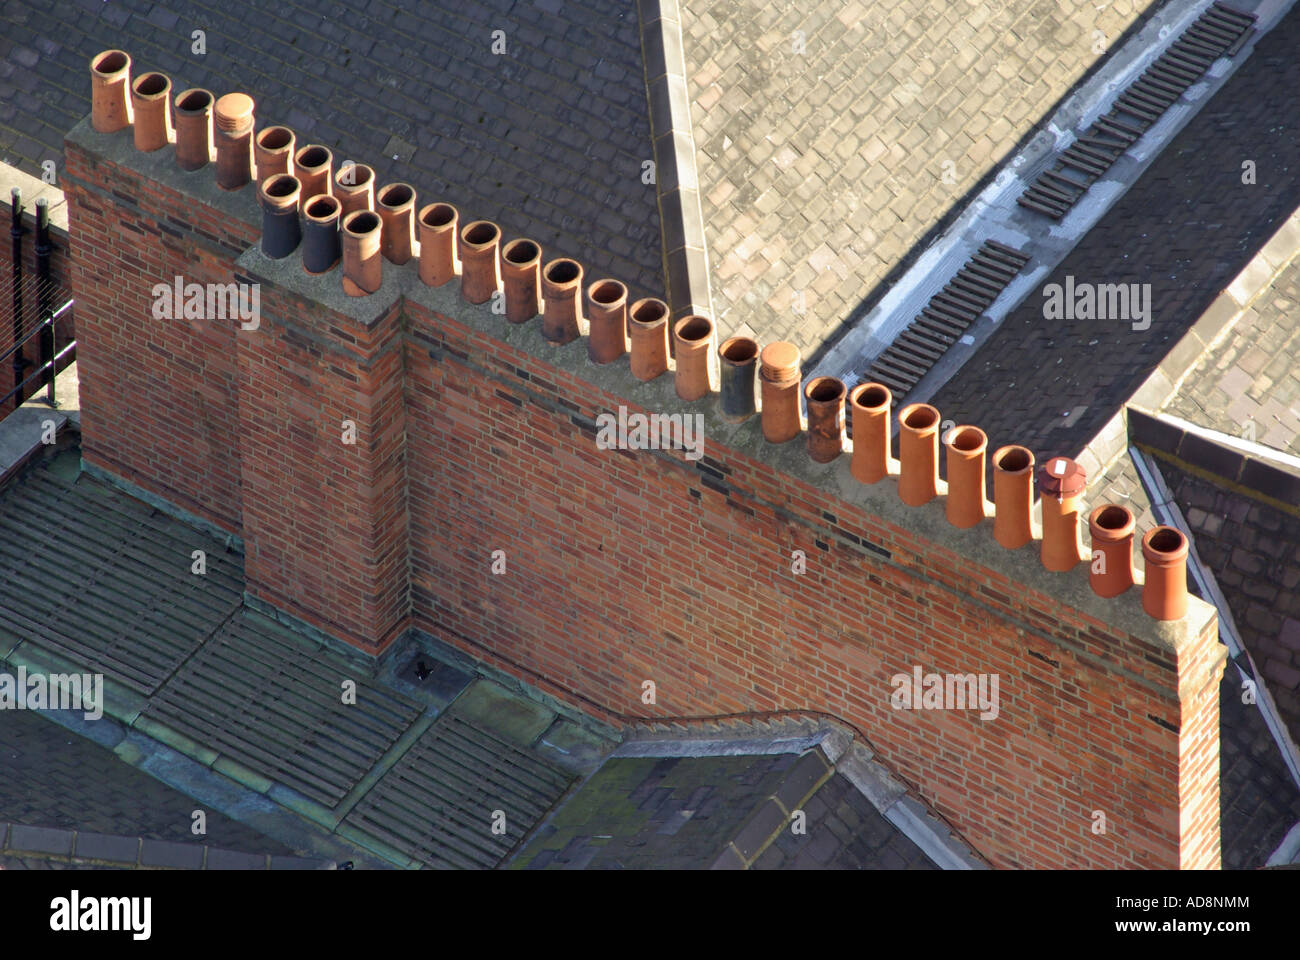 London looking down on long line of chimney pots on top of stack collecting together flues from multiple occupancy - Stock Image